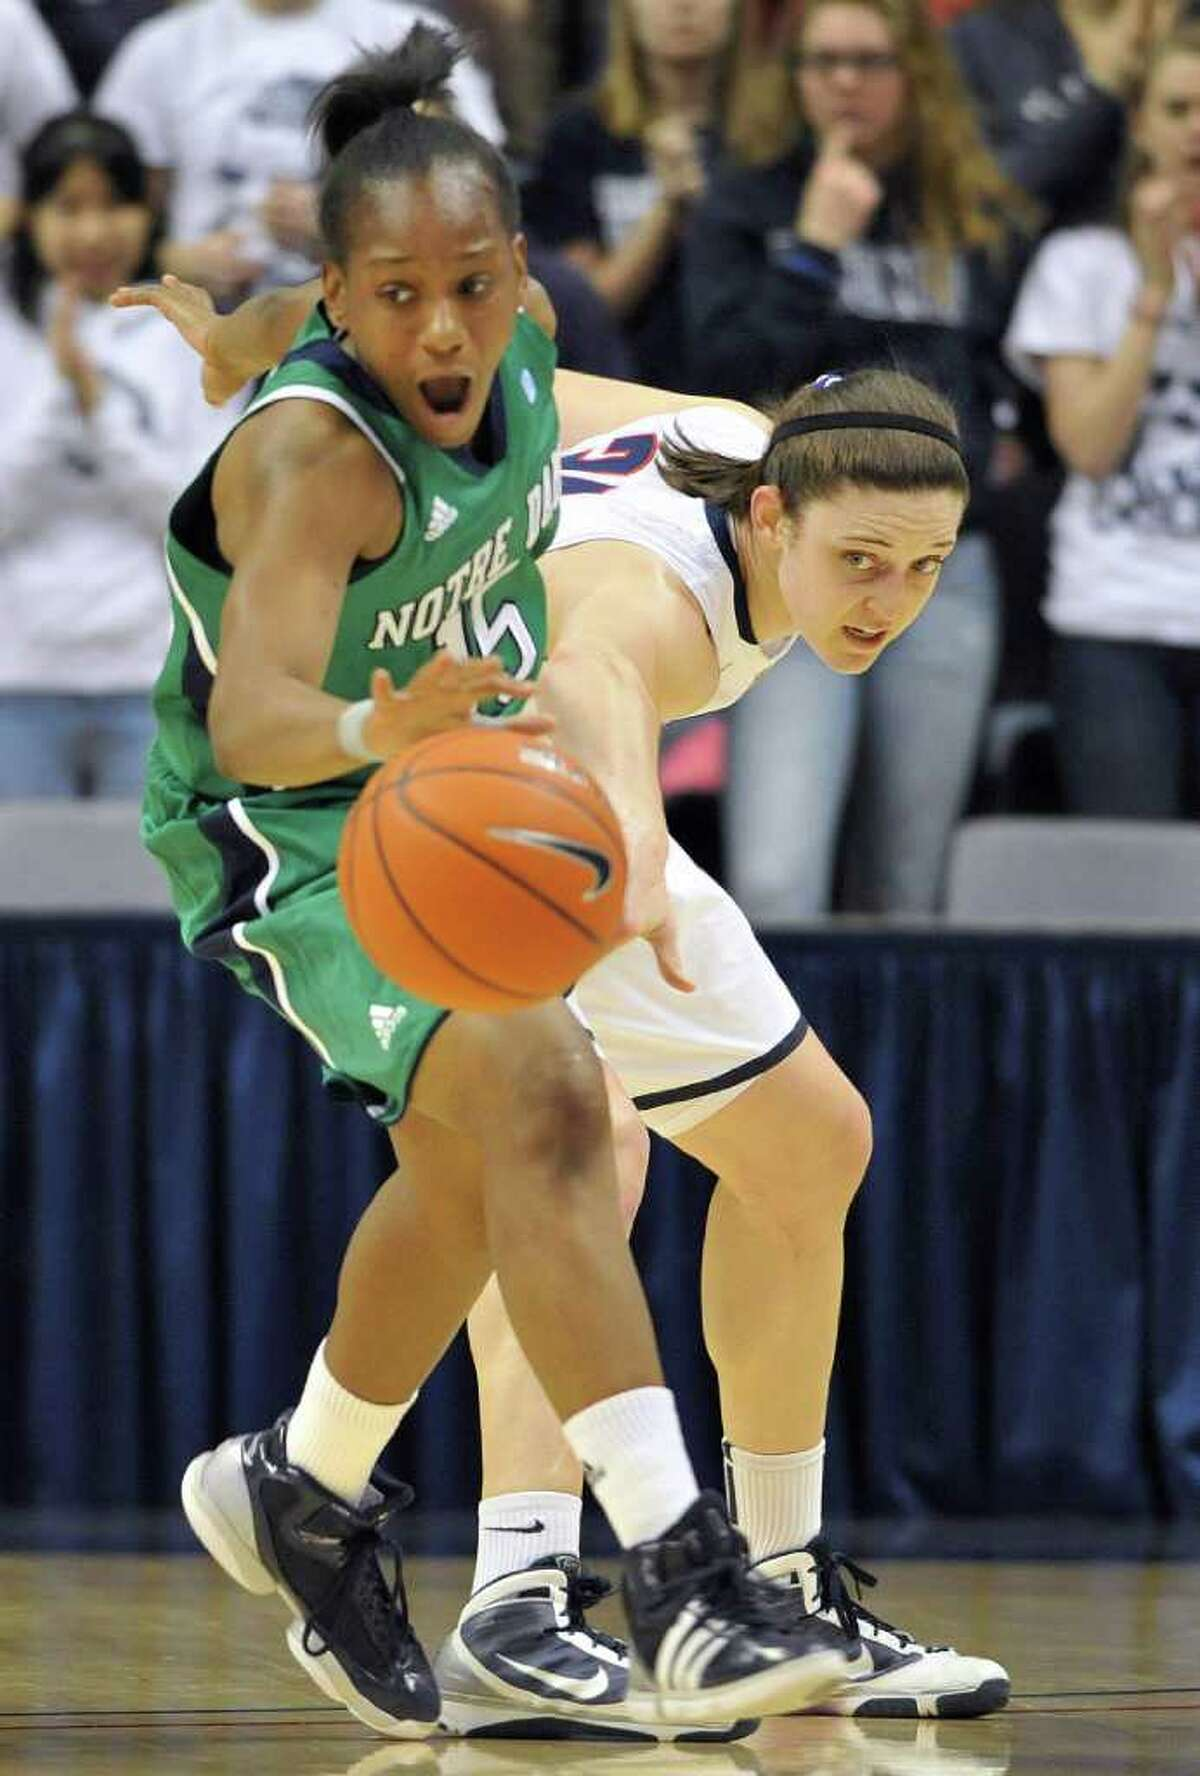 Connecticut's Kelly Faris, right, has the ball stolen by Notre Dame's Kaila Turner during the first half of an NCAA college basketball game, in Storrs, Conn., Saturday, Feb. 19, 2011. (AP Photo/Jessica Hill)